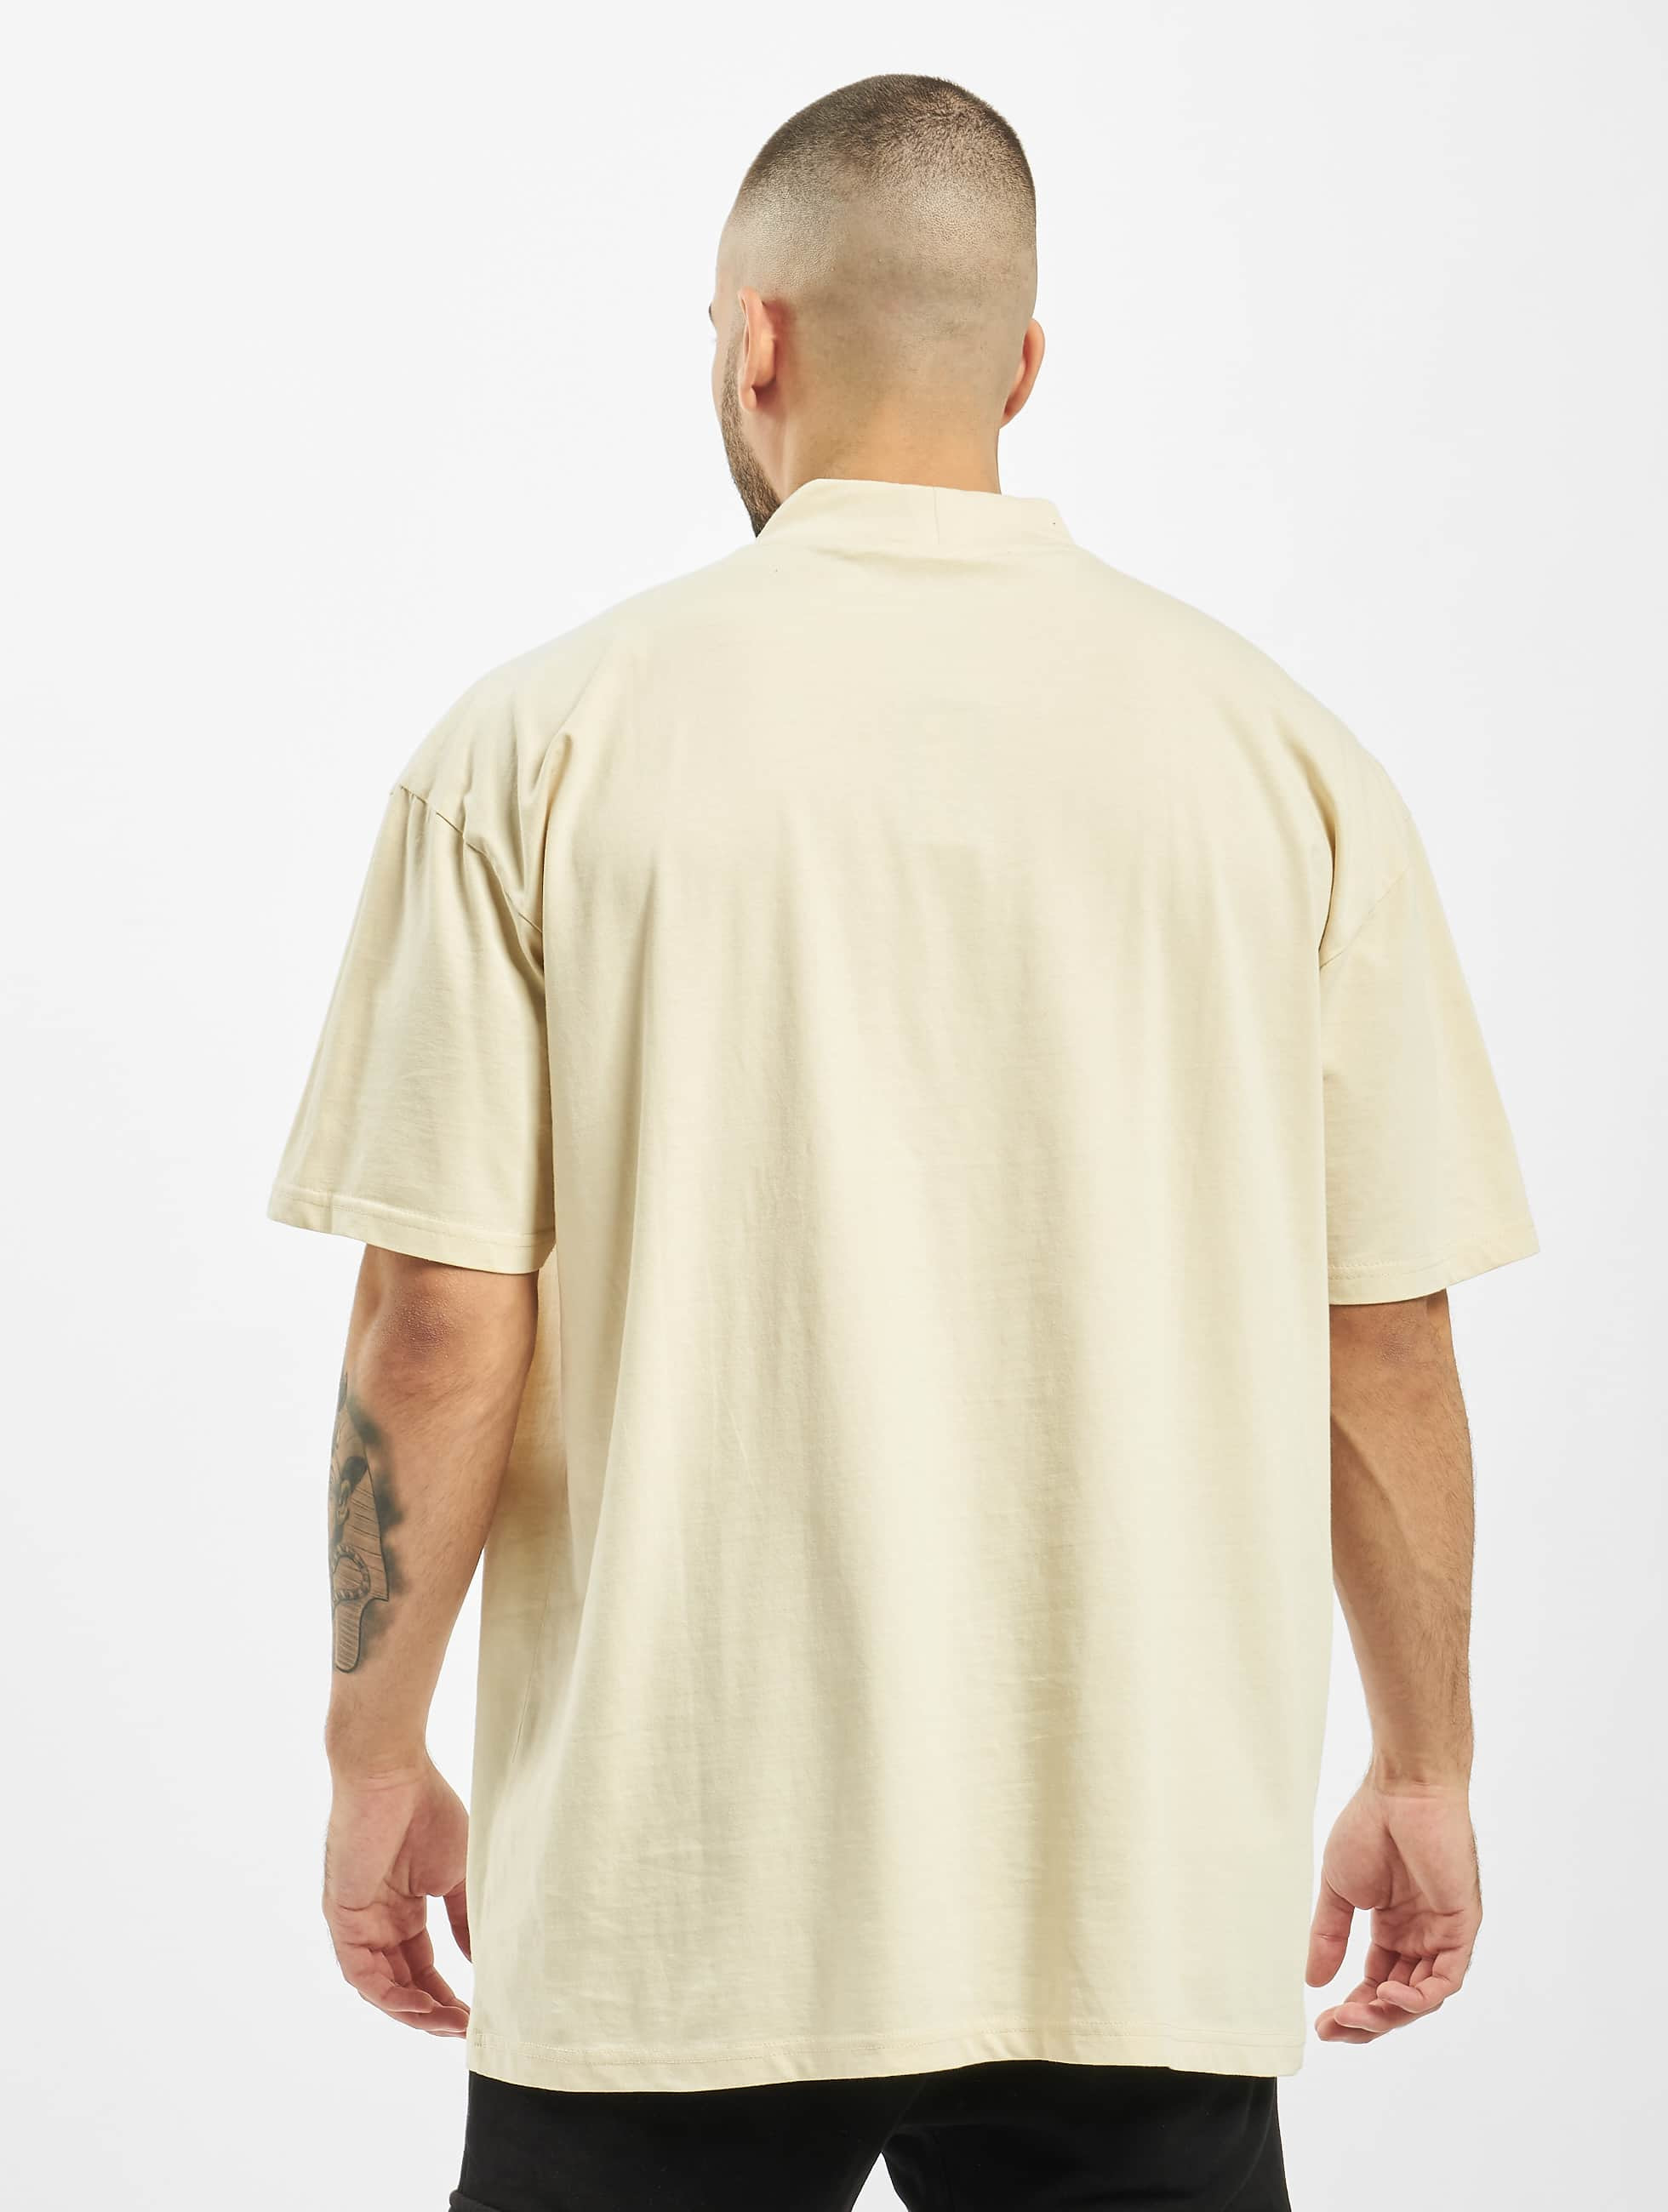 Urban Classics T-Shirt Oversized Turtleneck beige